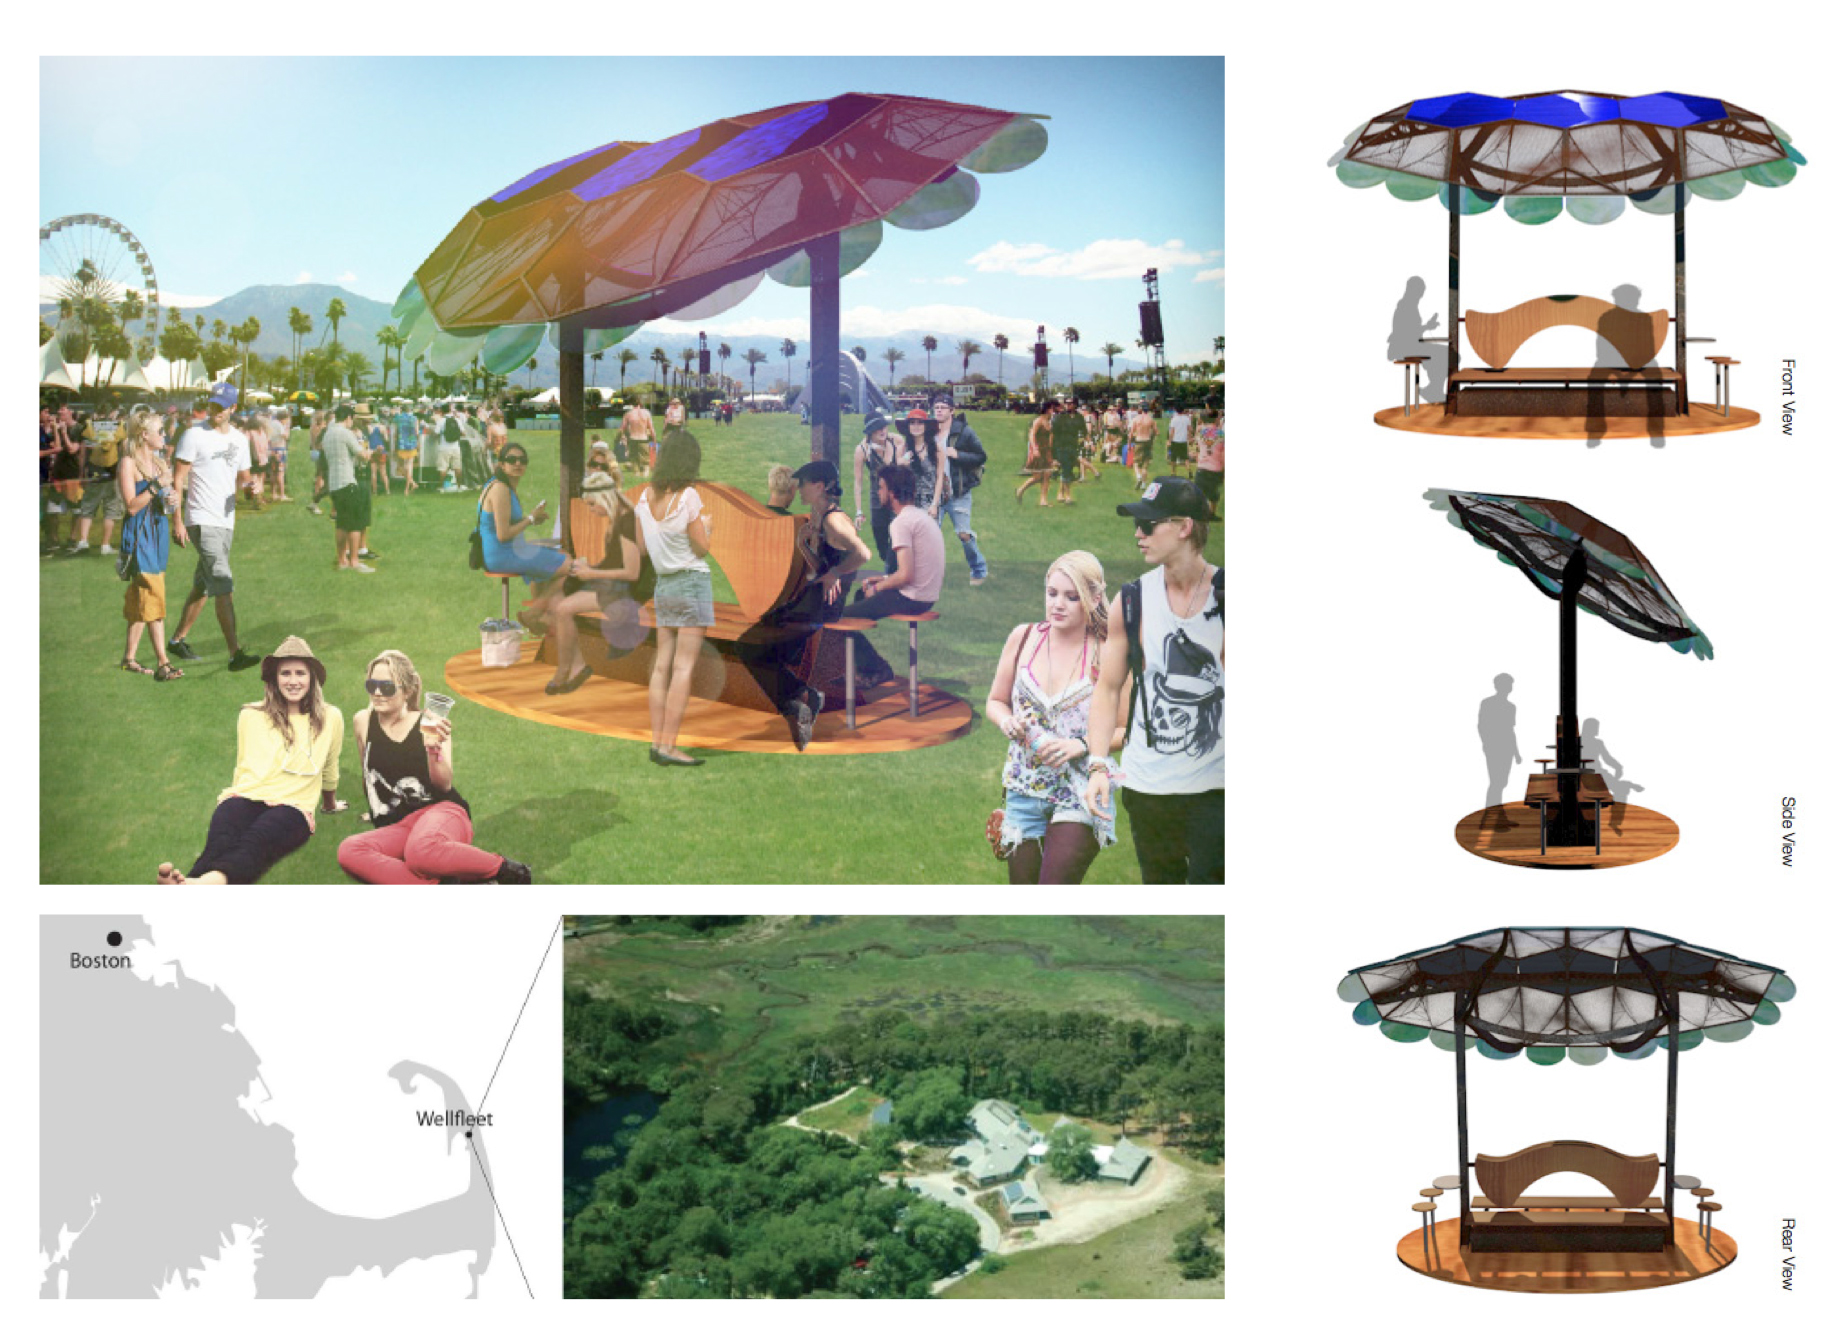 Sol Design Lab, Solar Shell, Concept for Coachella and Wellfleet Bay Wildlife Sanctuary, 2012